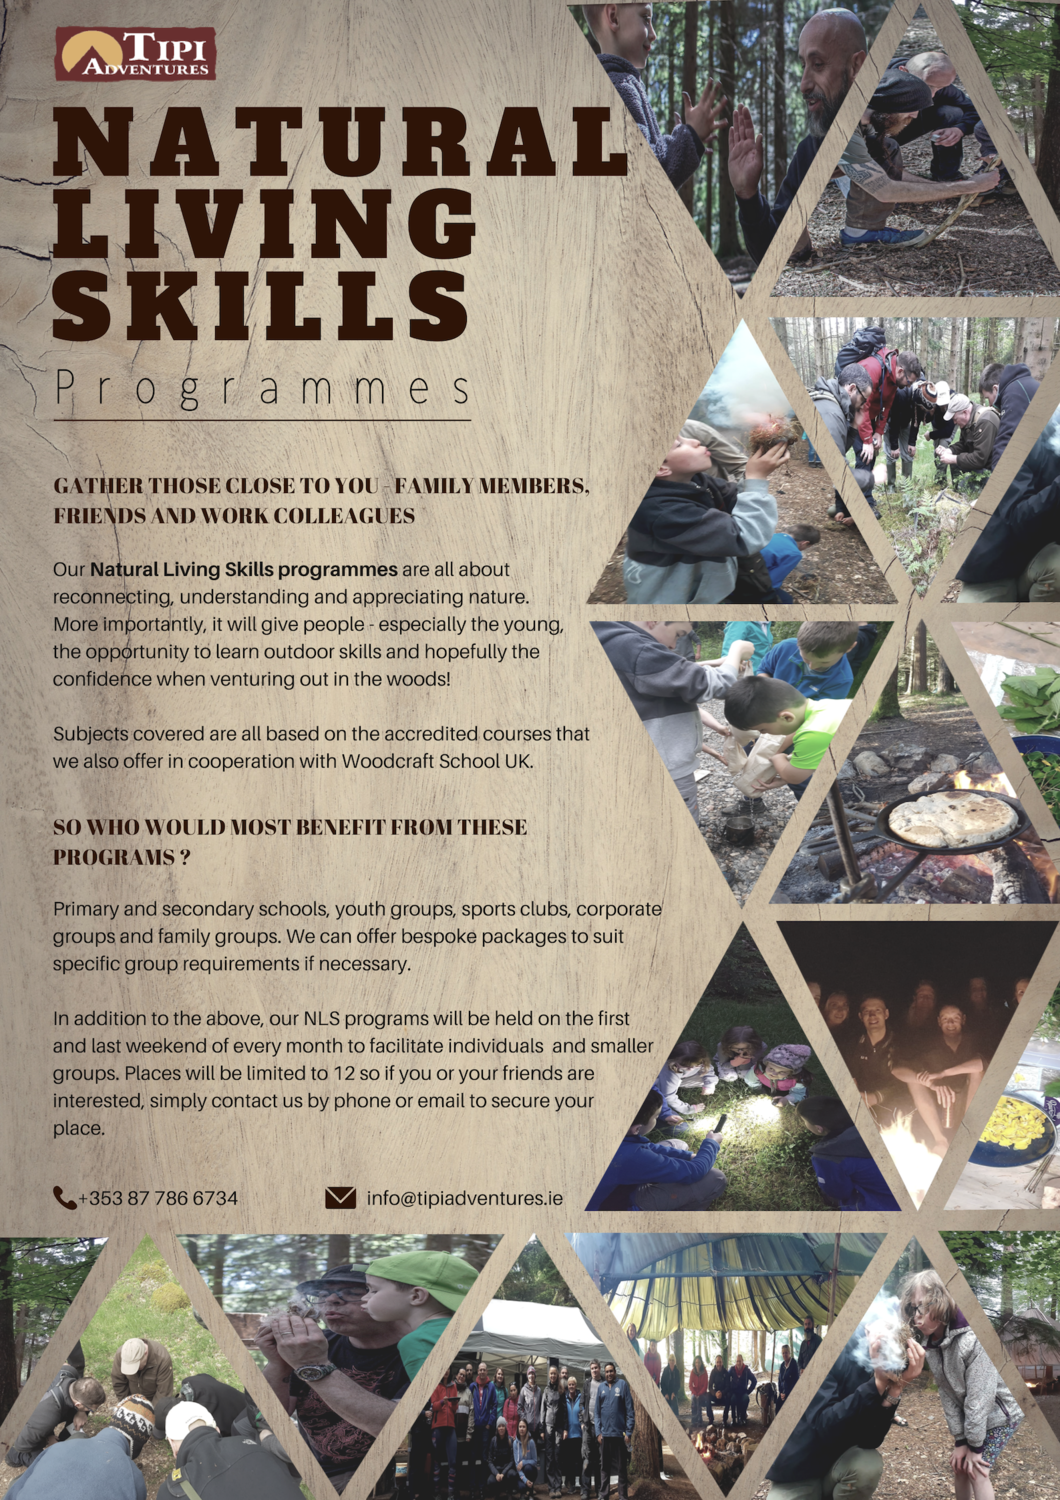 Natural Living Skills 1 - 1 day programme with overnight stay